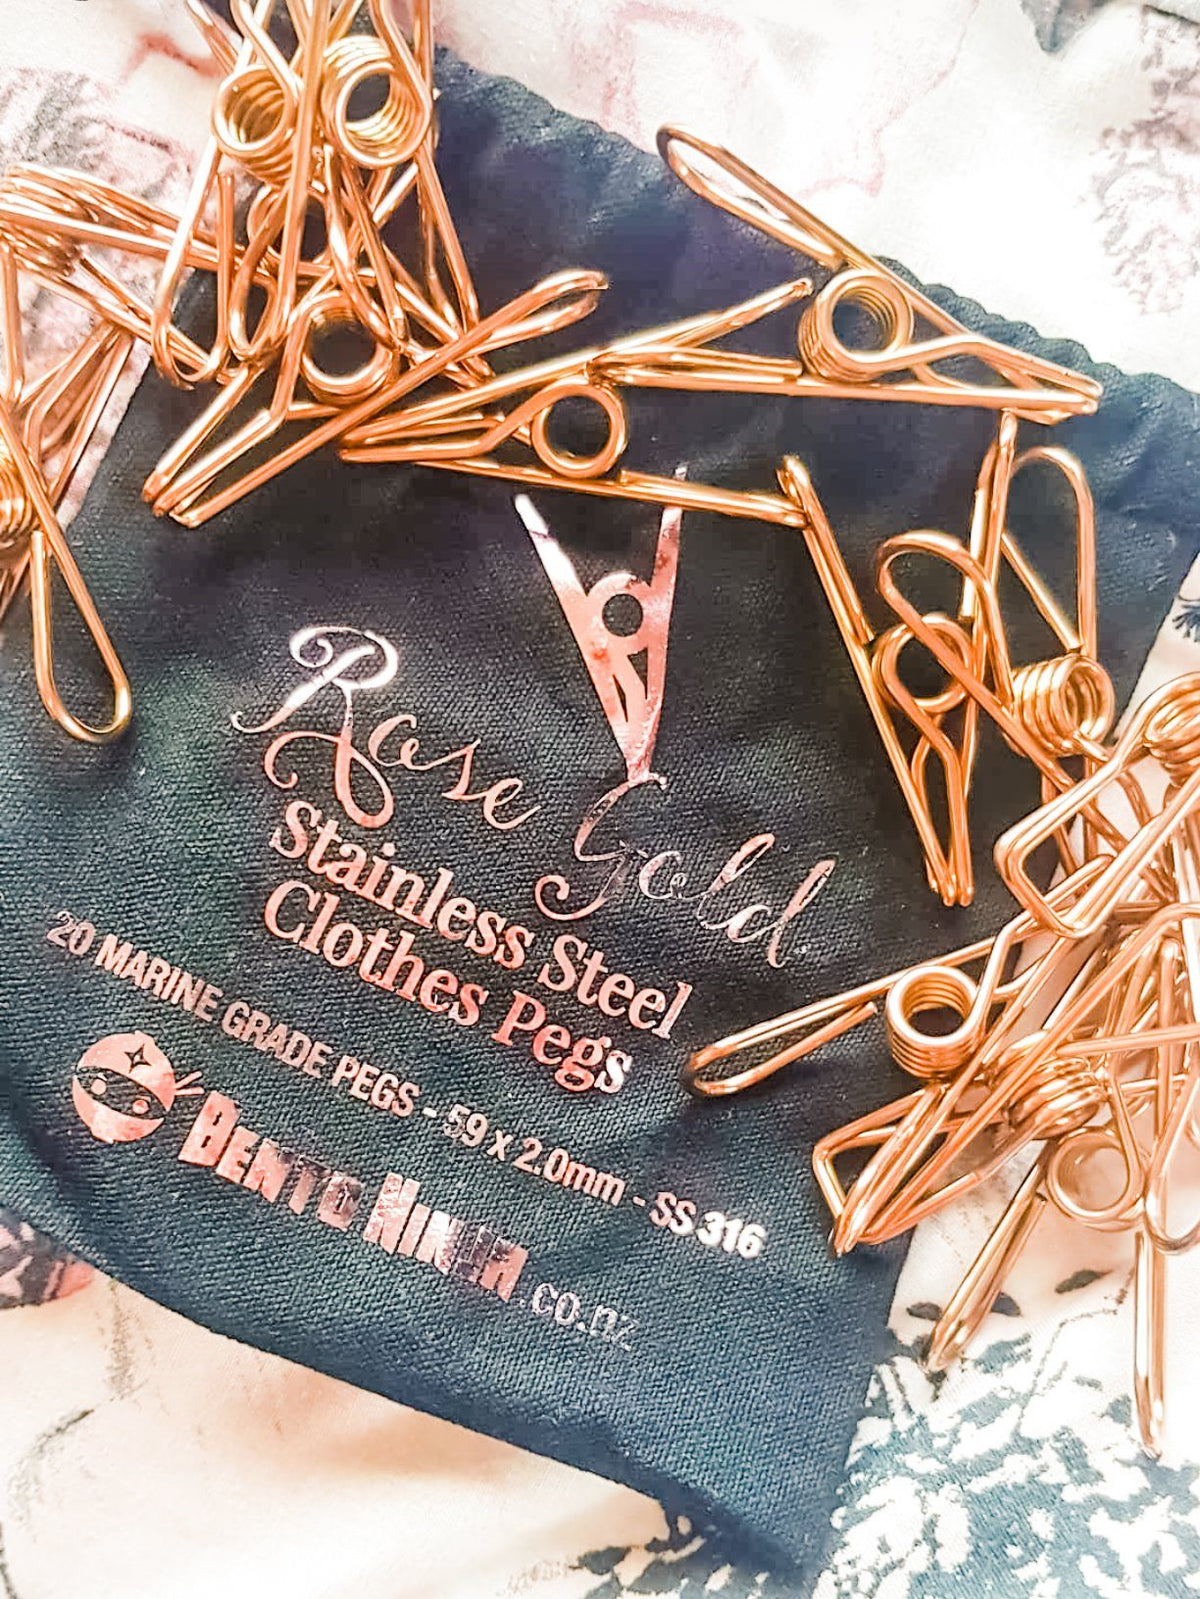 Stainless Steel Rose Gold Clothes Pegs 20pc